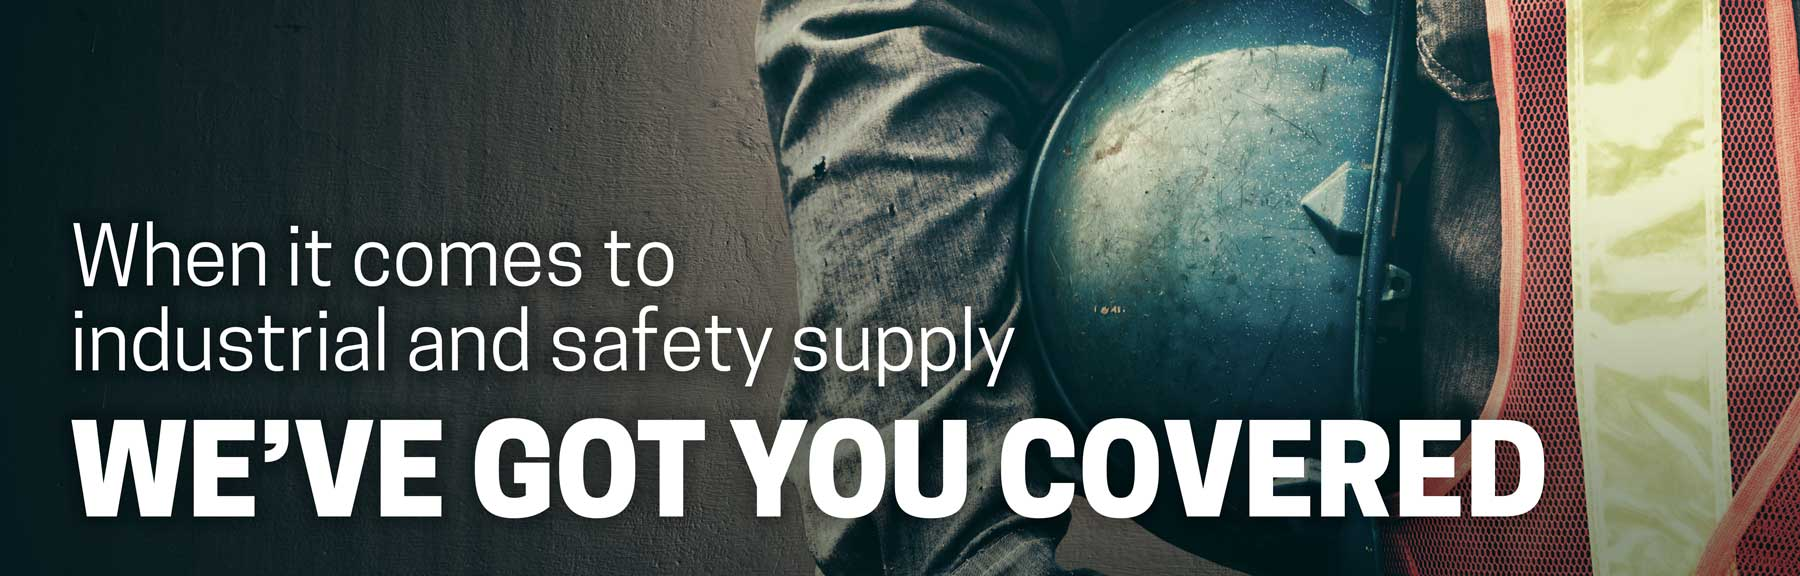 When it comes to industrial and safety supply, we got you covered